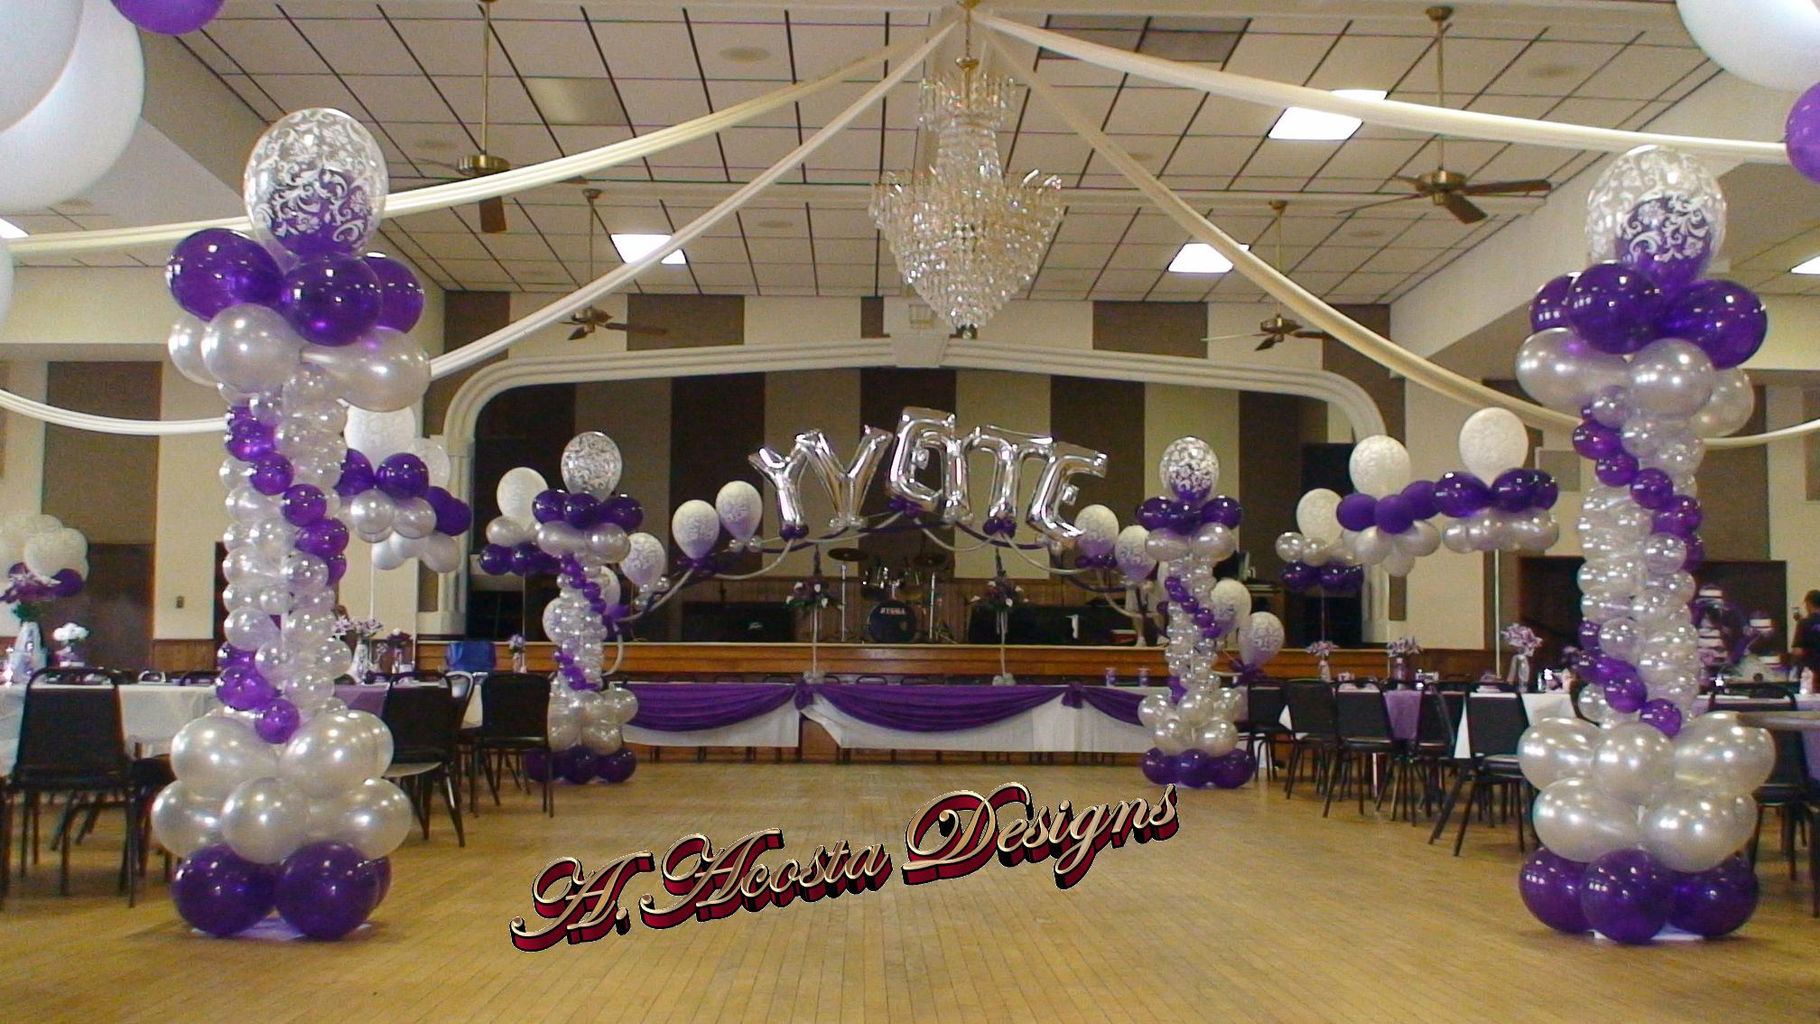 Aacosta designs inc event decorations with flowers and for Balloon decoration ideas for quinceaneras